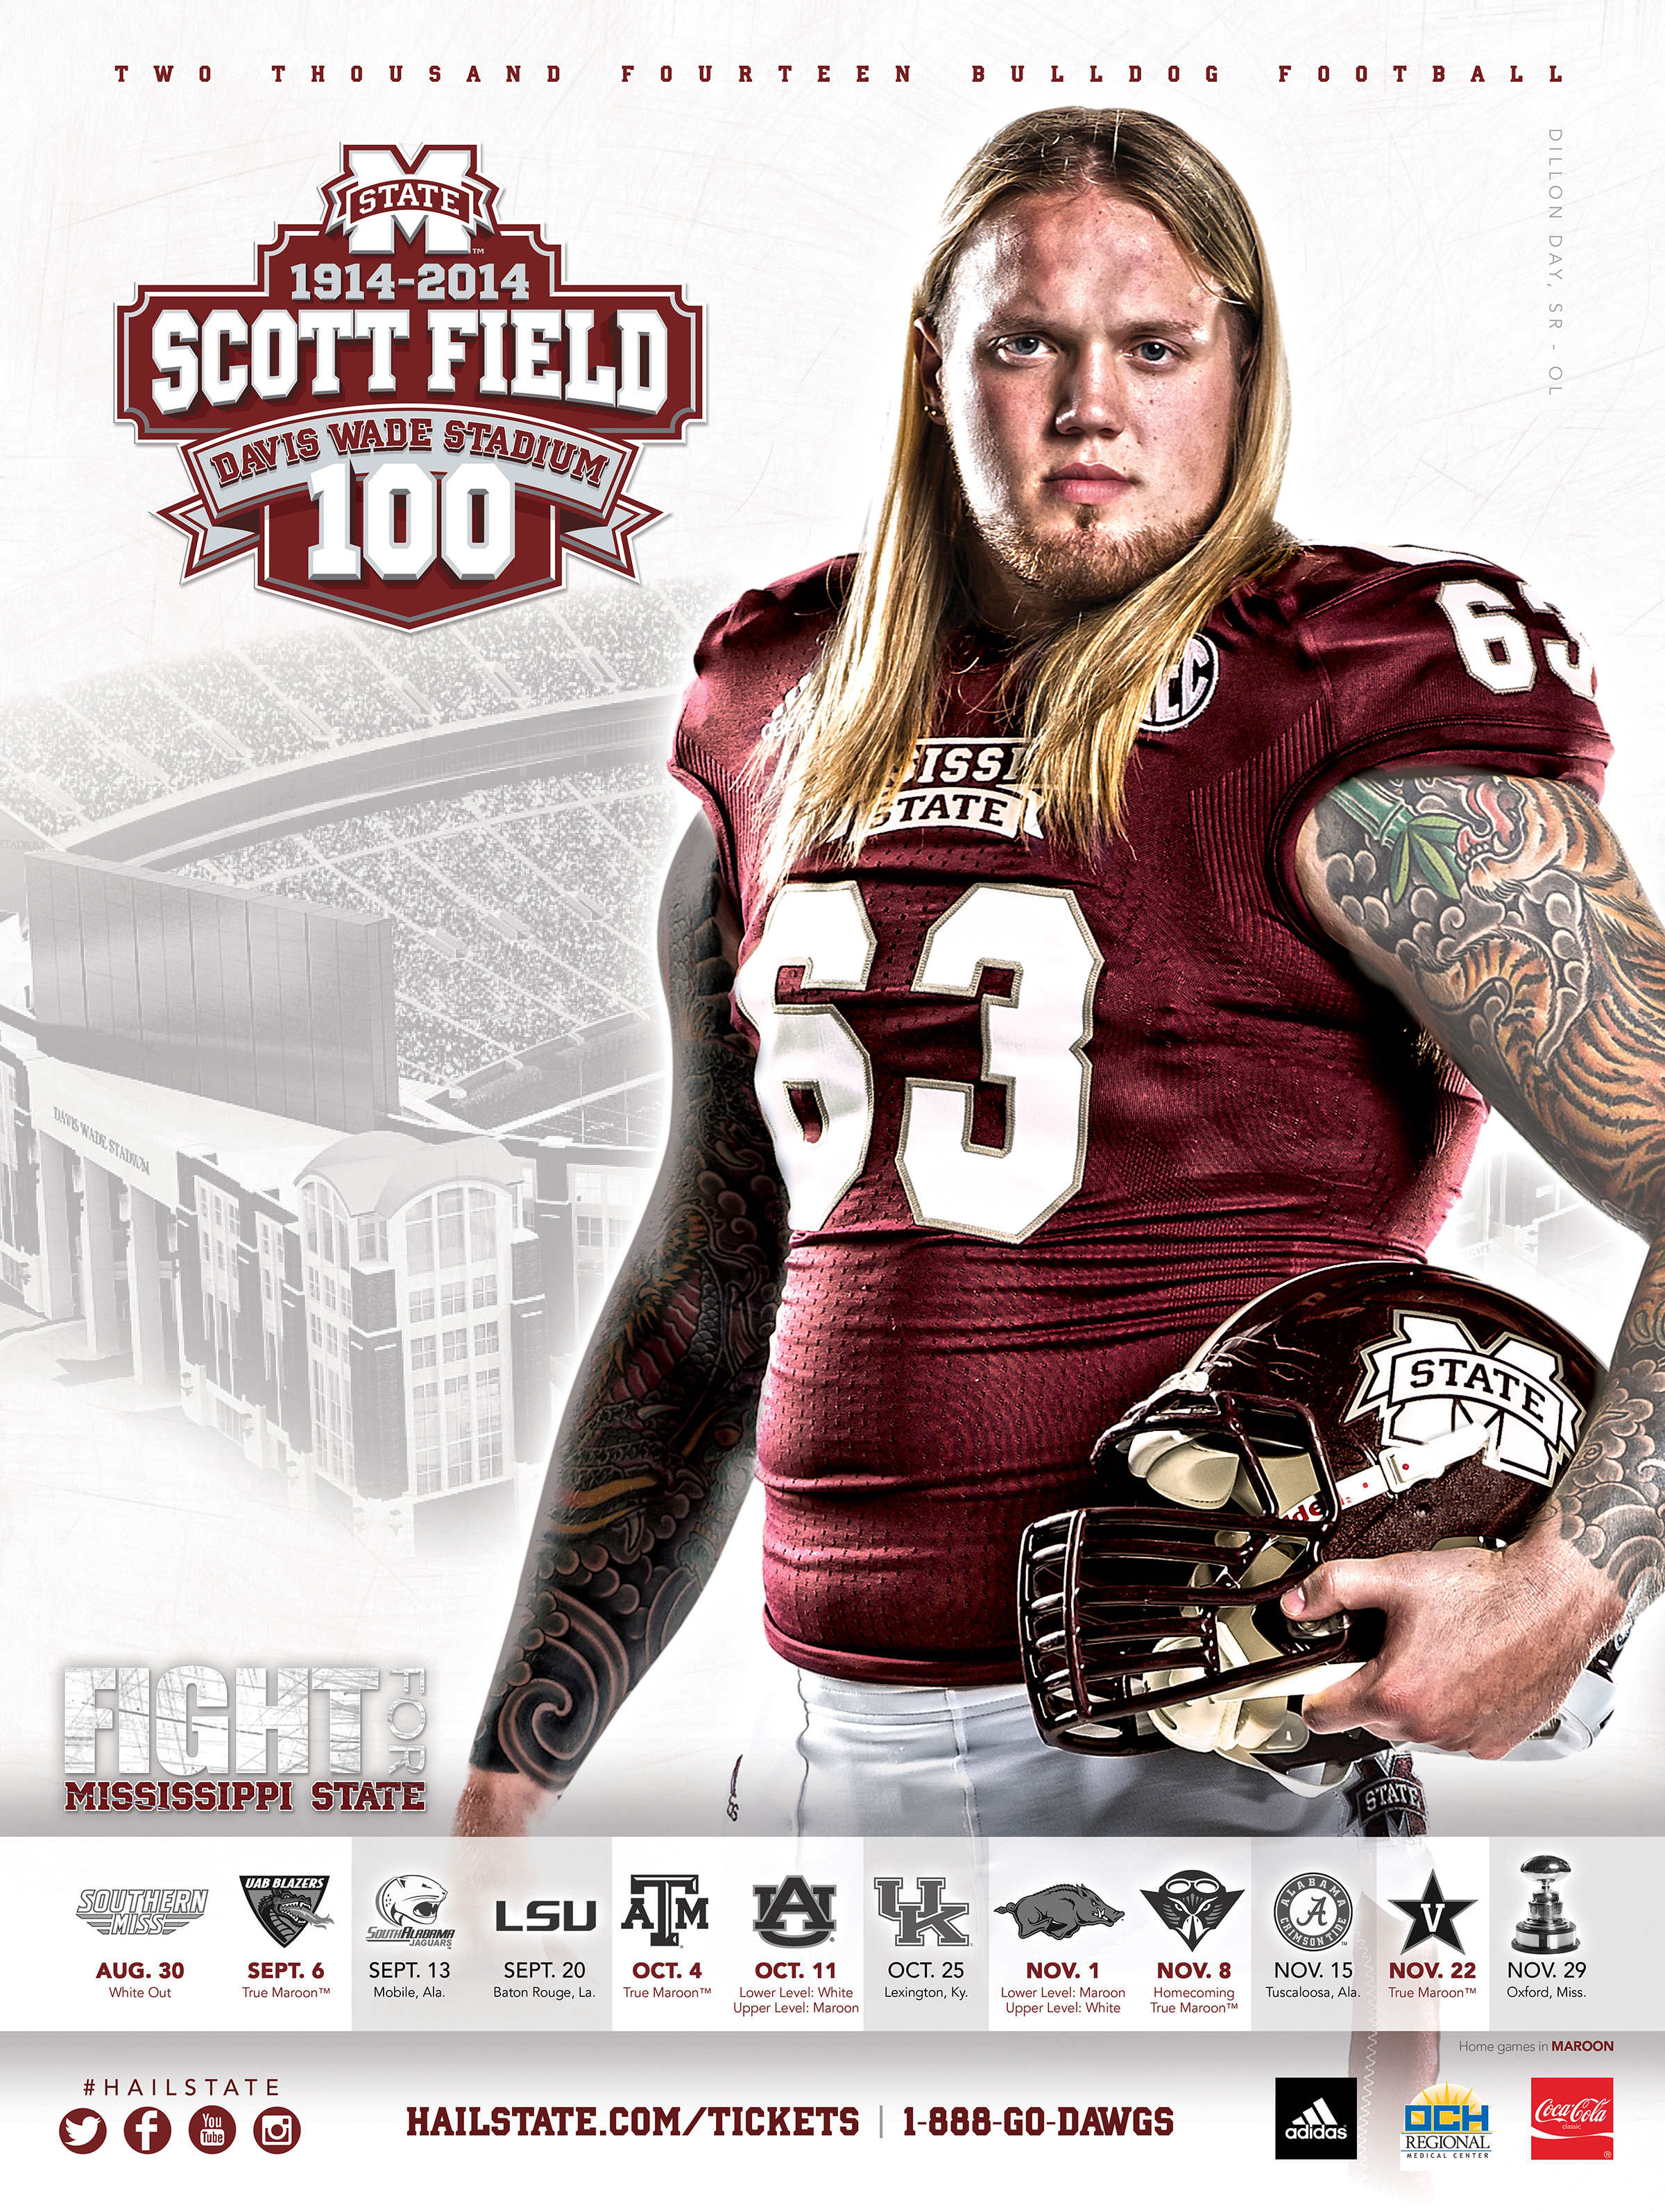 2014 MSU football schedule posters released  HailStateBEAT